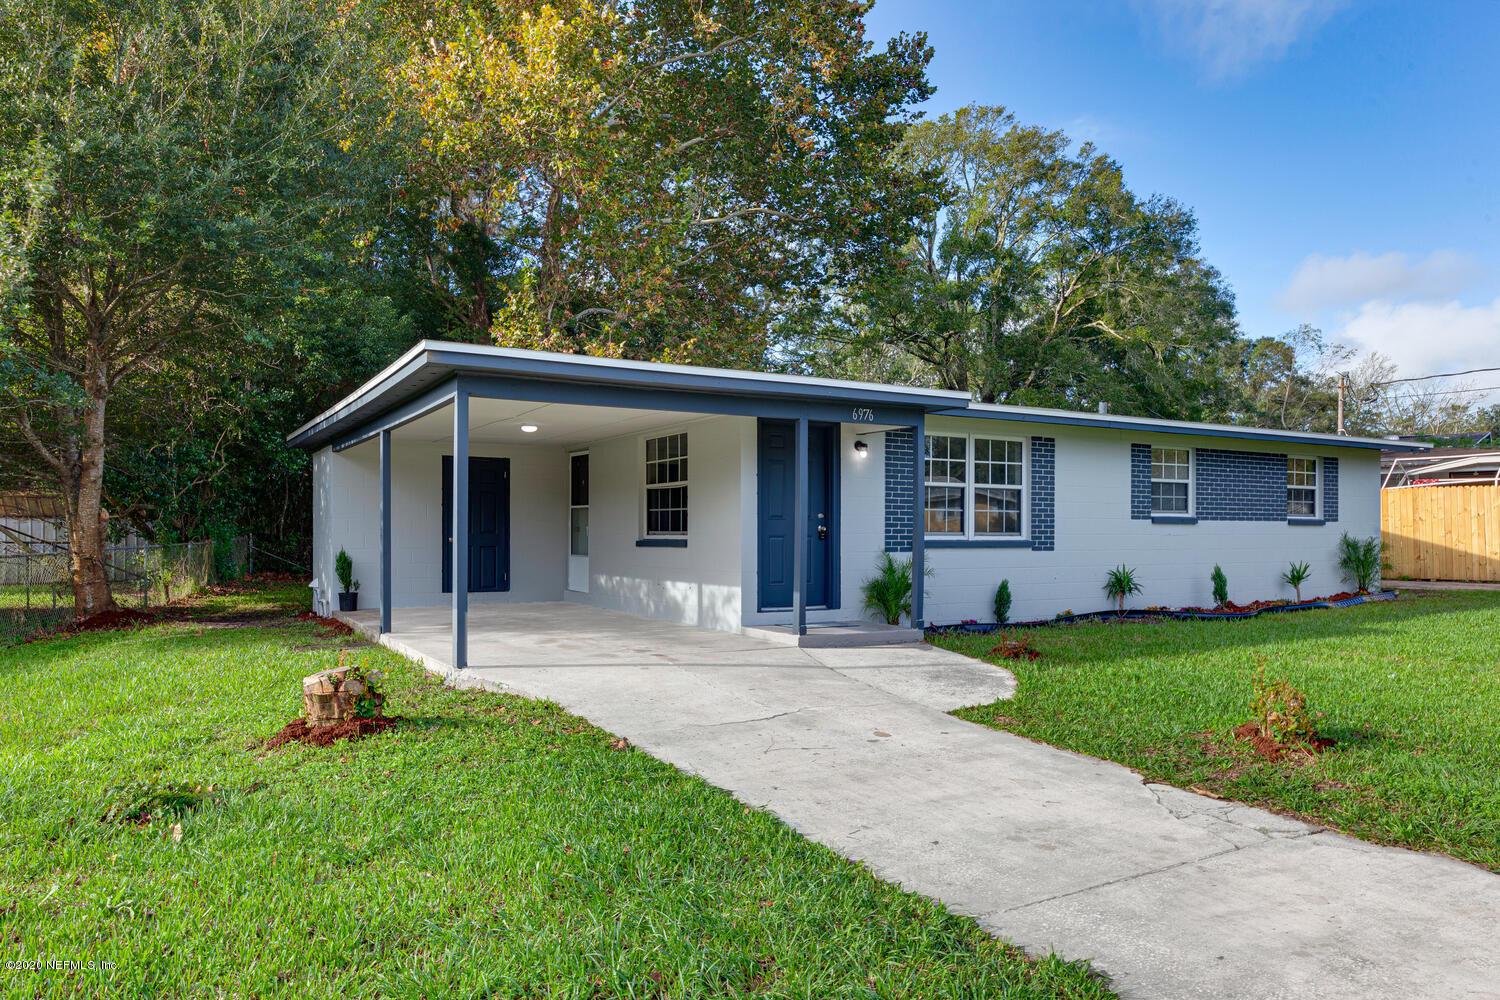 6976 TAMPICO, JACKSONVILLE, FLORIDA 32244, 3 Bedrooms Bedrooms, ,2 BathroomsBathrooms,Residential,For sale,TAMPICO,1079336